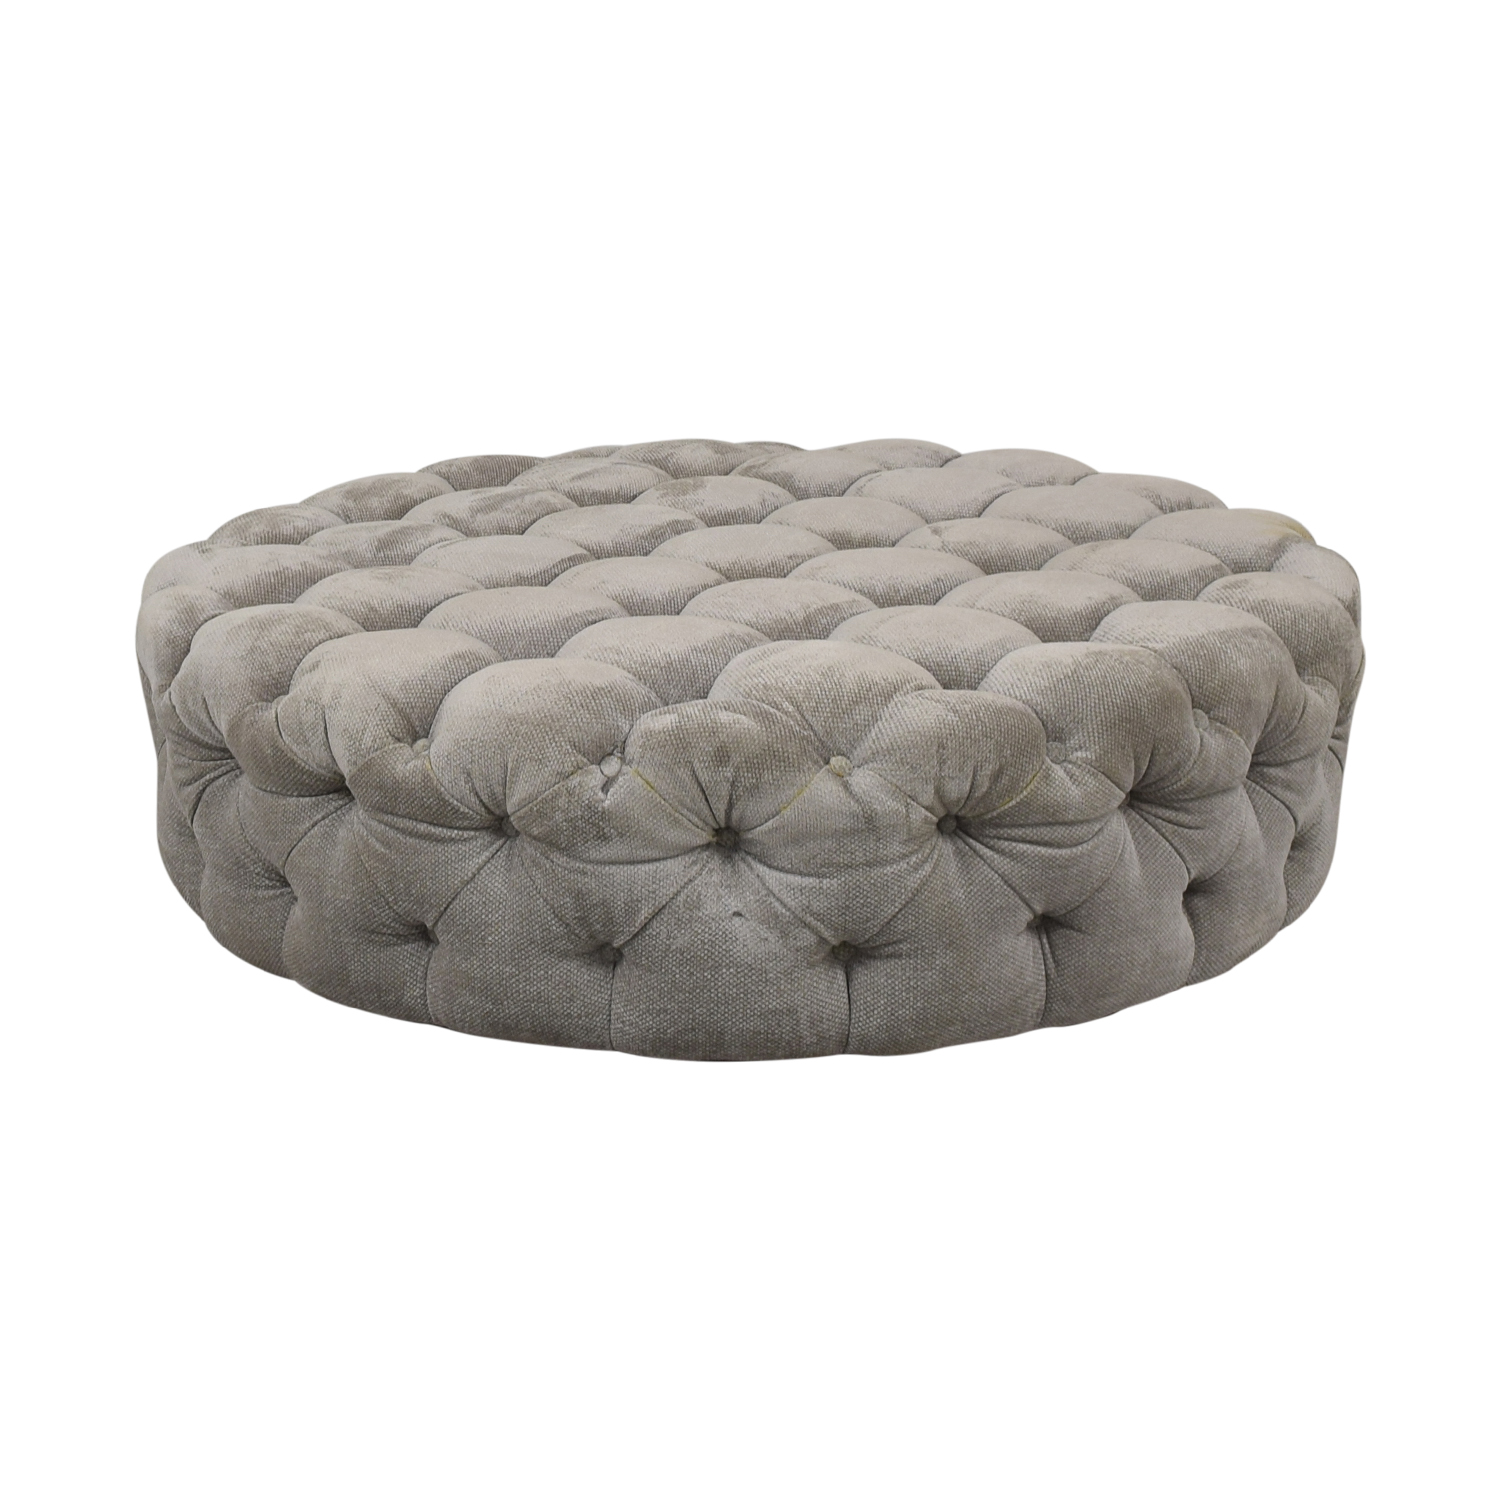 Round Tufted Ottoman or Coffee Table coupon